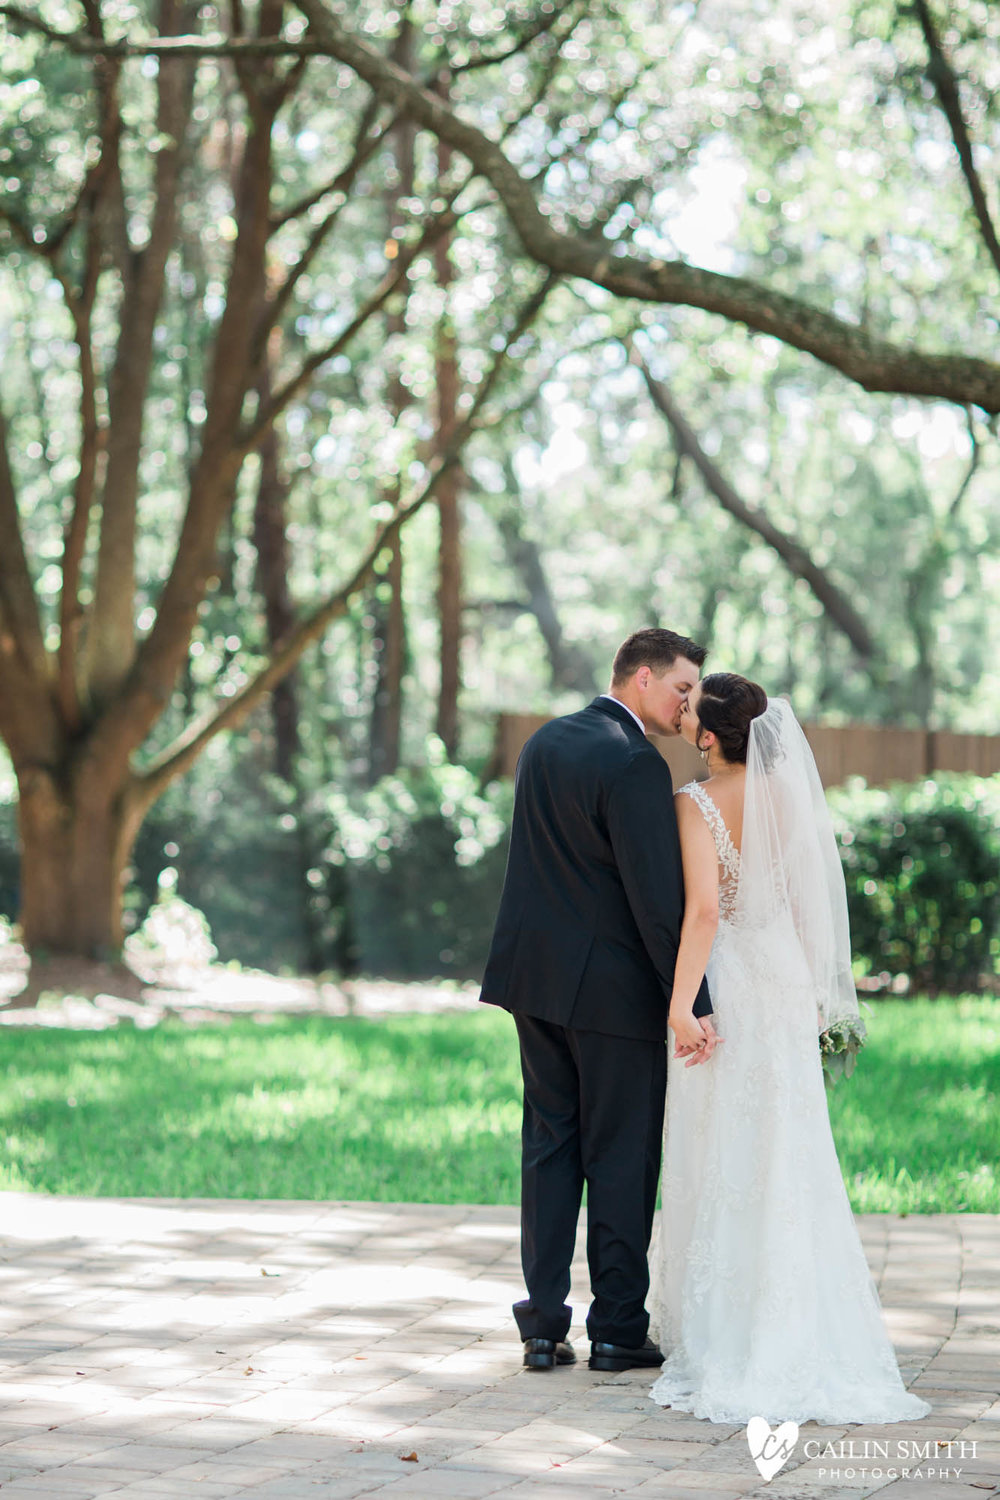 Bethany_Kyle_Bowing_Oaks_Plantation_Wedding_Photography_0044.jpg